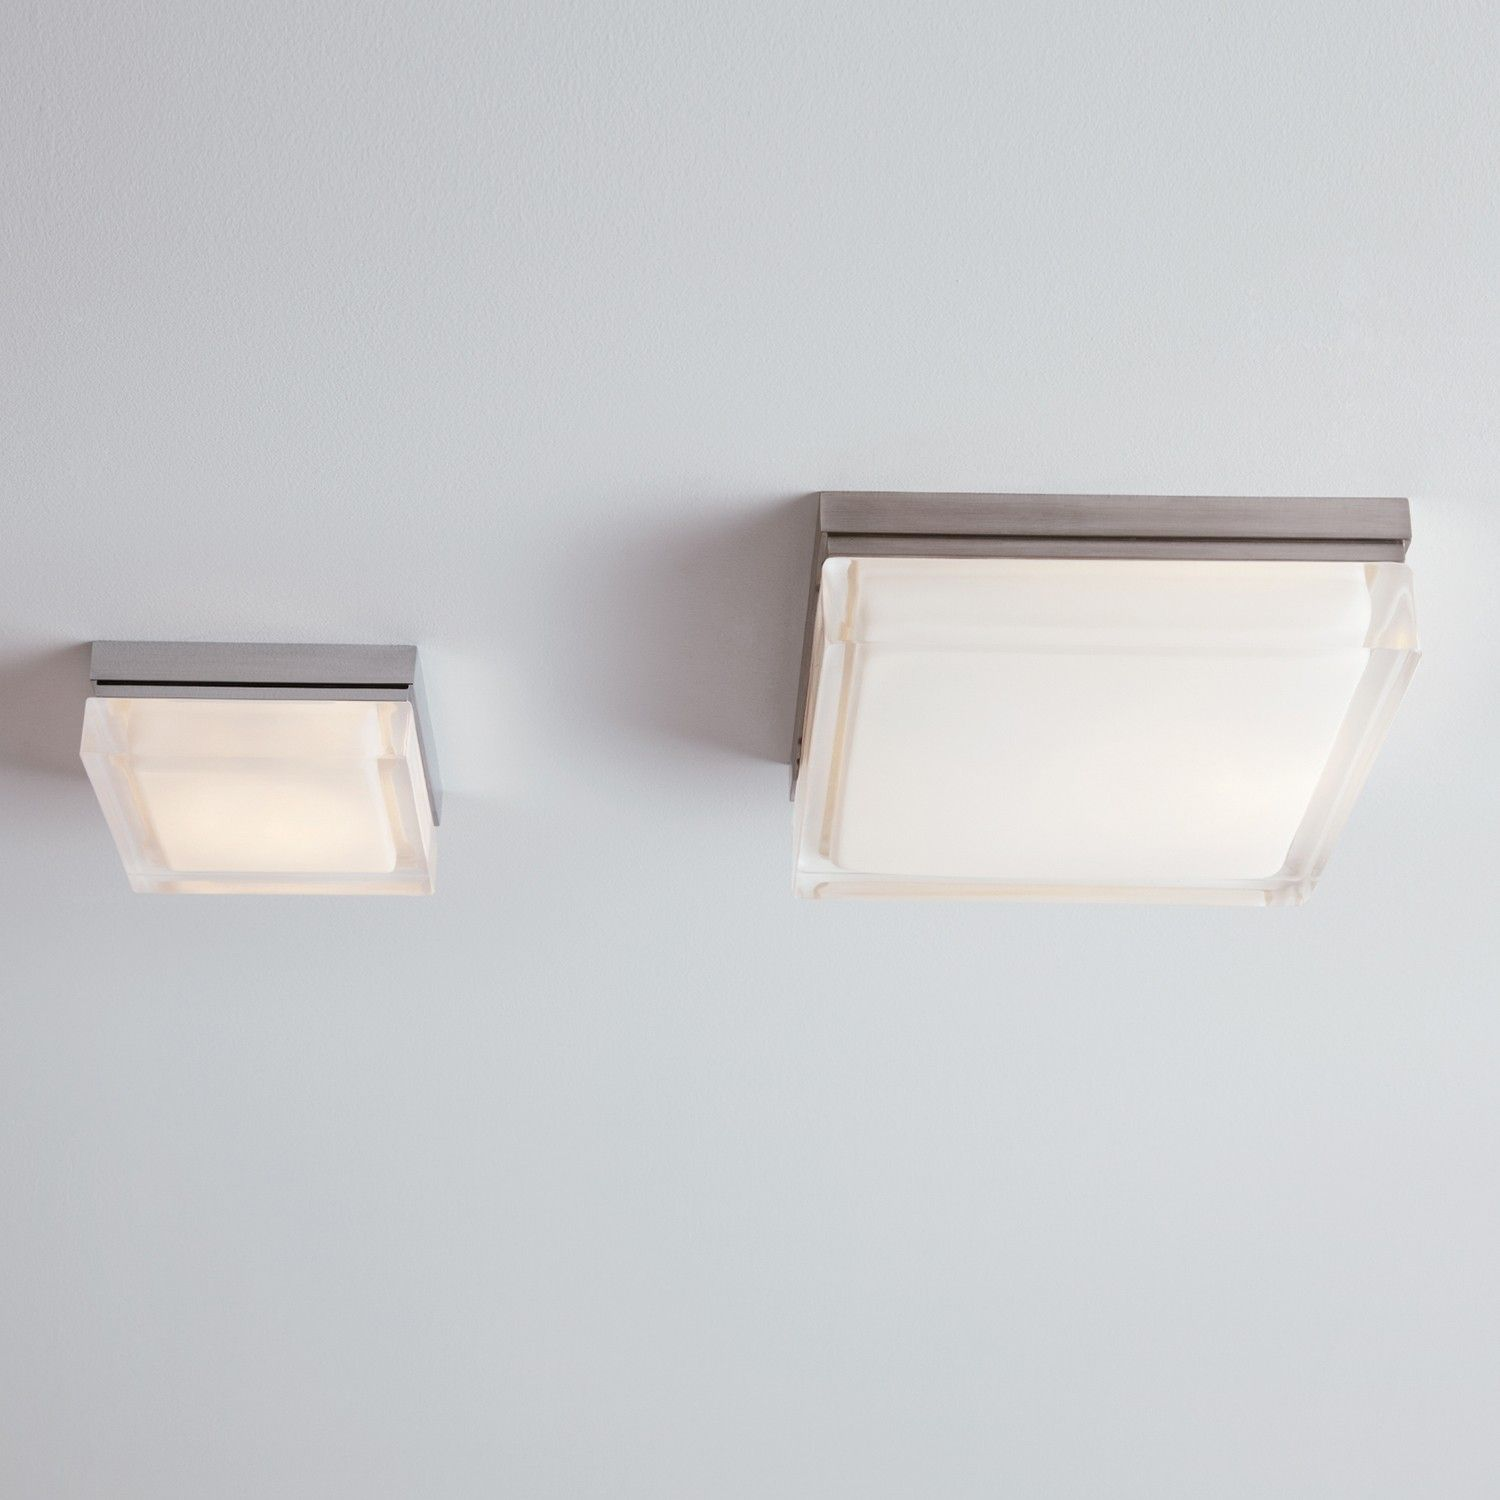 ceilings light manufacturer lights round small lighting buy ceiling the name by tech